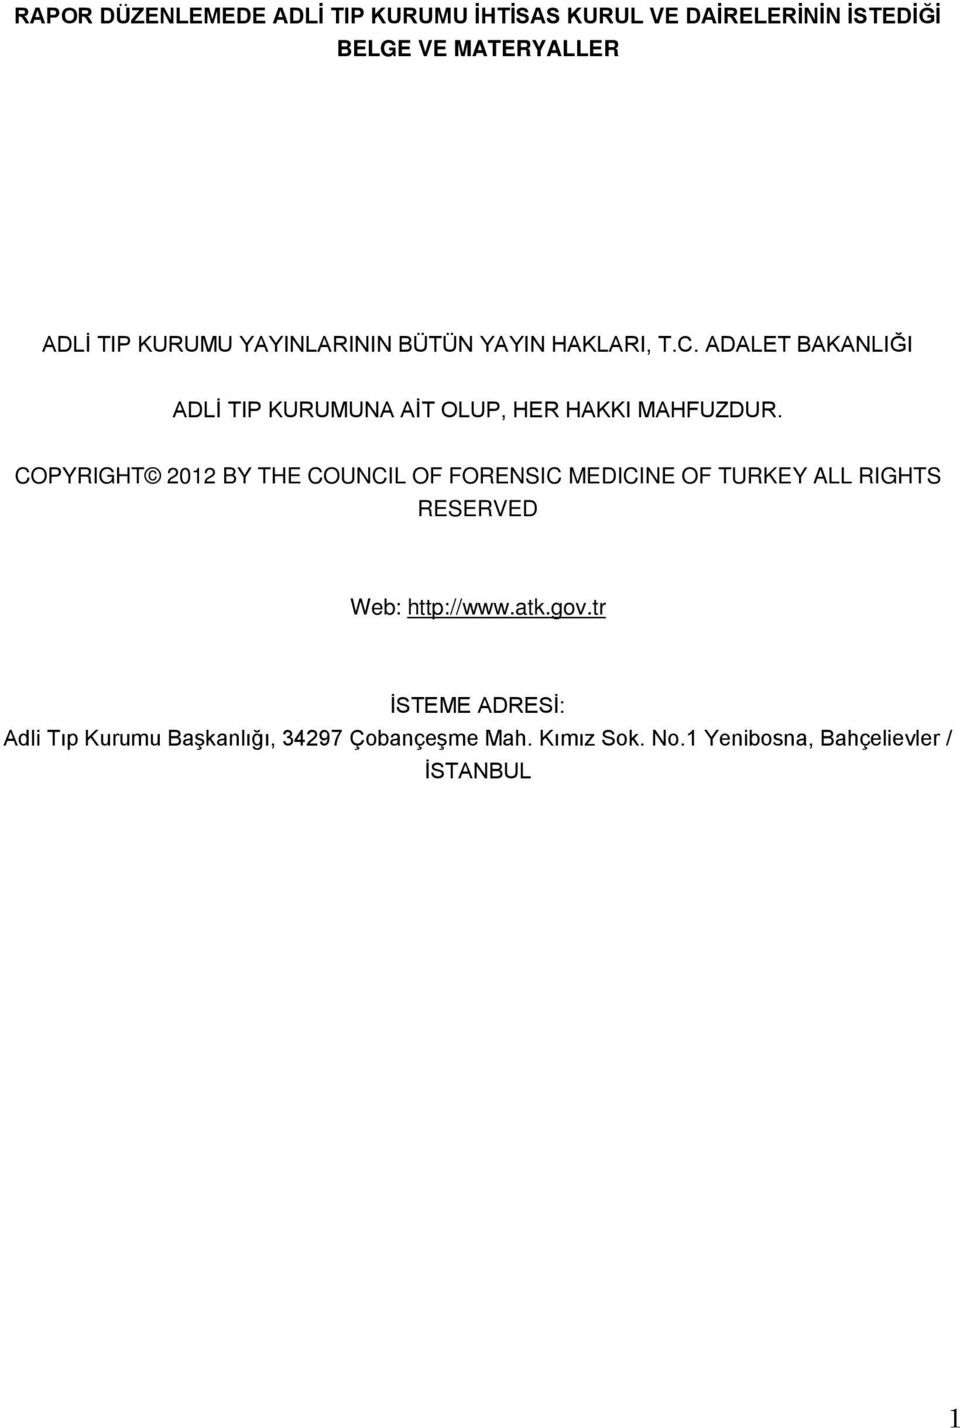 COPYRIGHT 2012 BY THE COUNCIL OF FORENSIC MEDICINE OF TURKEY ALL RIGHTS RESERVED Web: http://www.atk.gov.